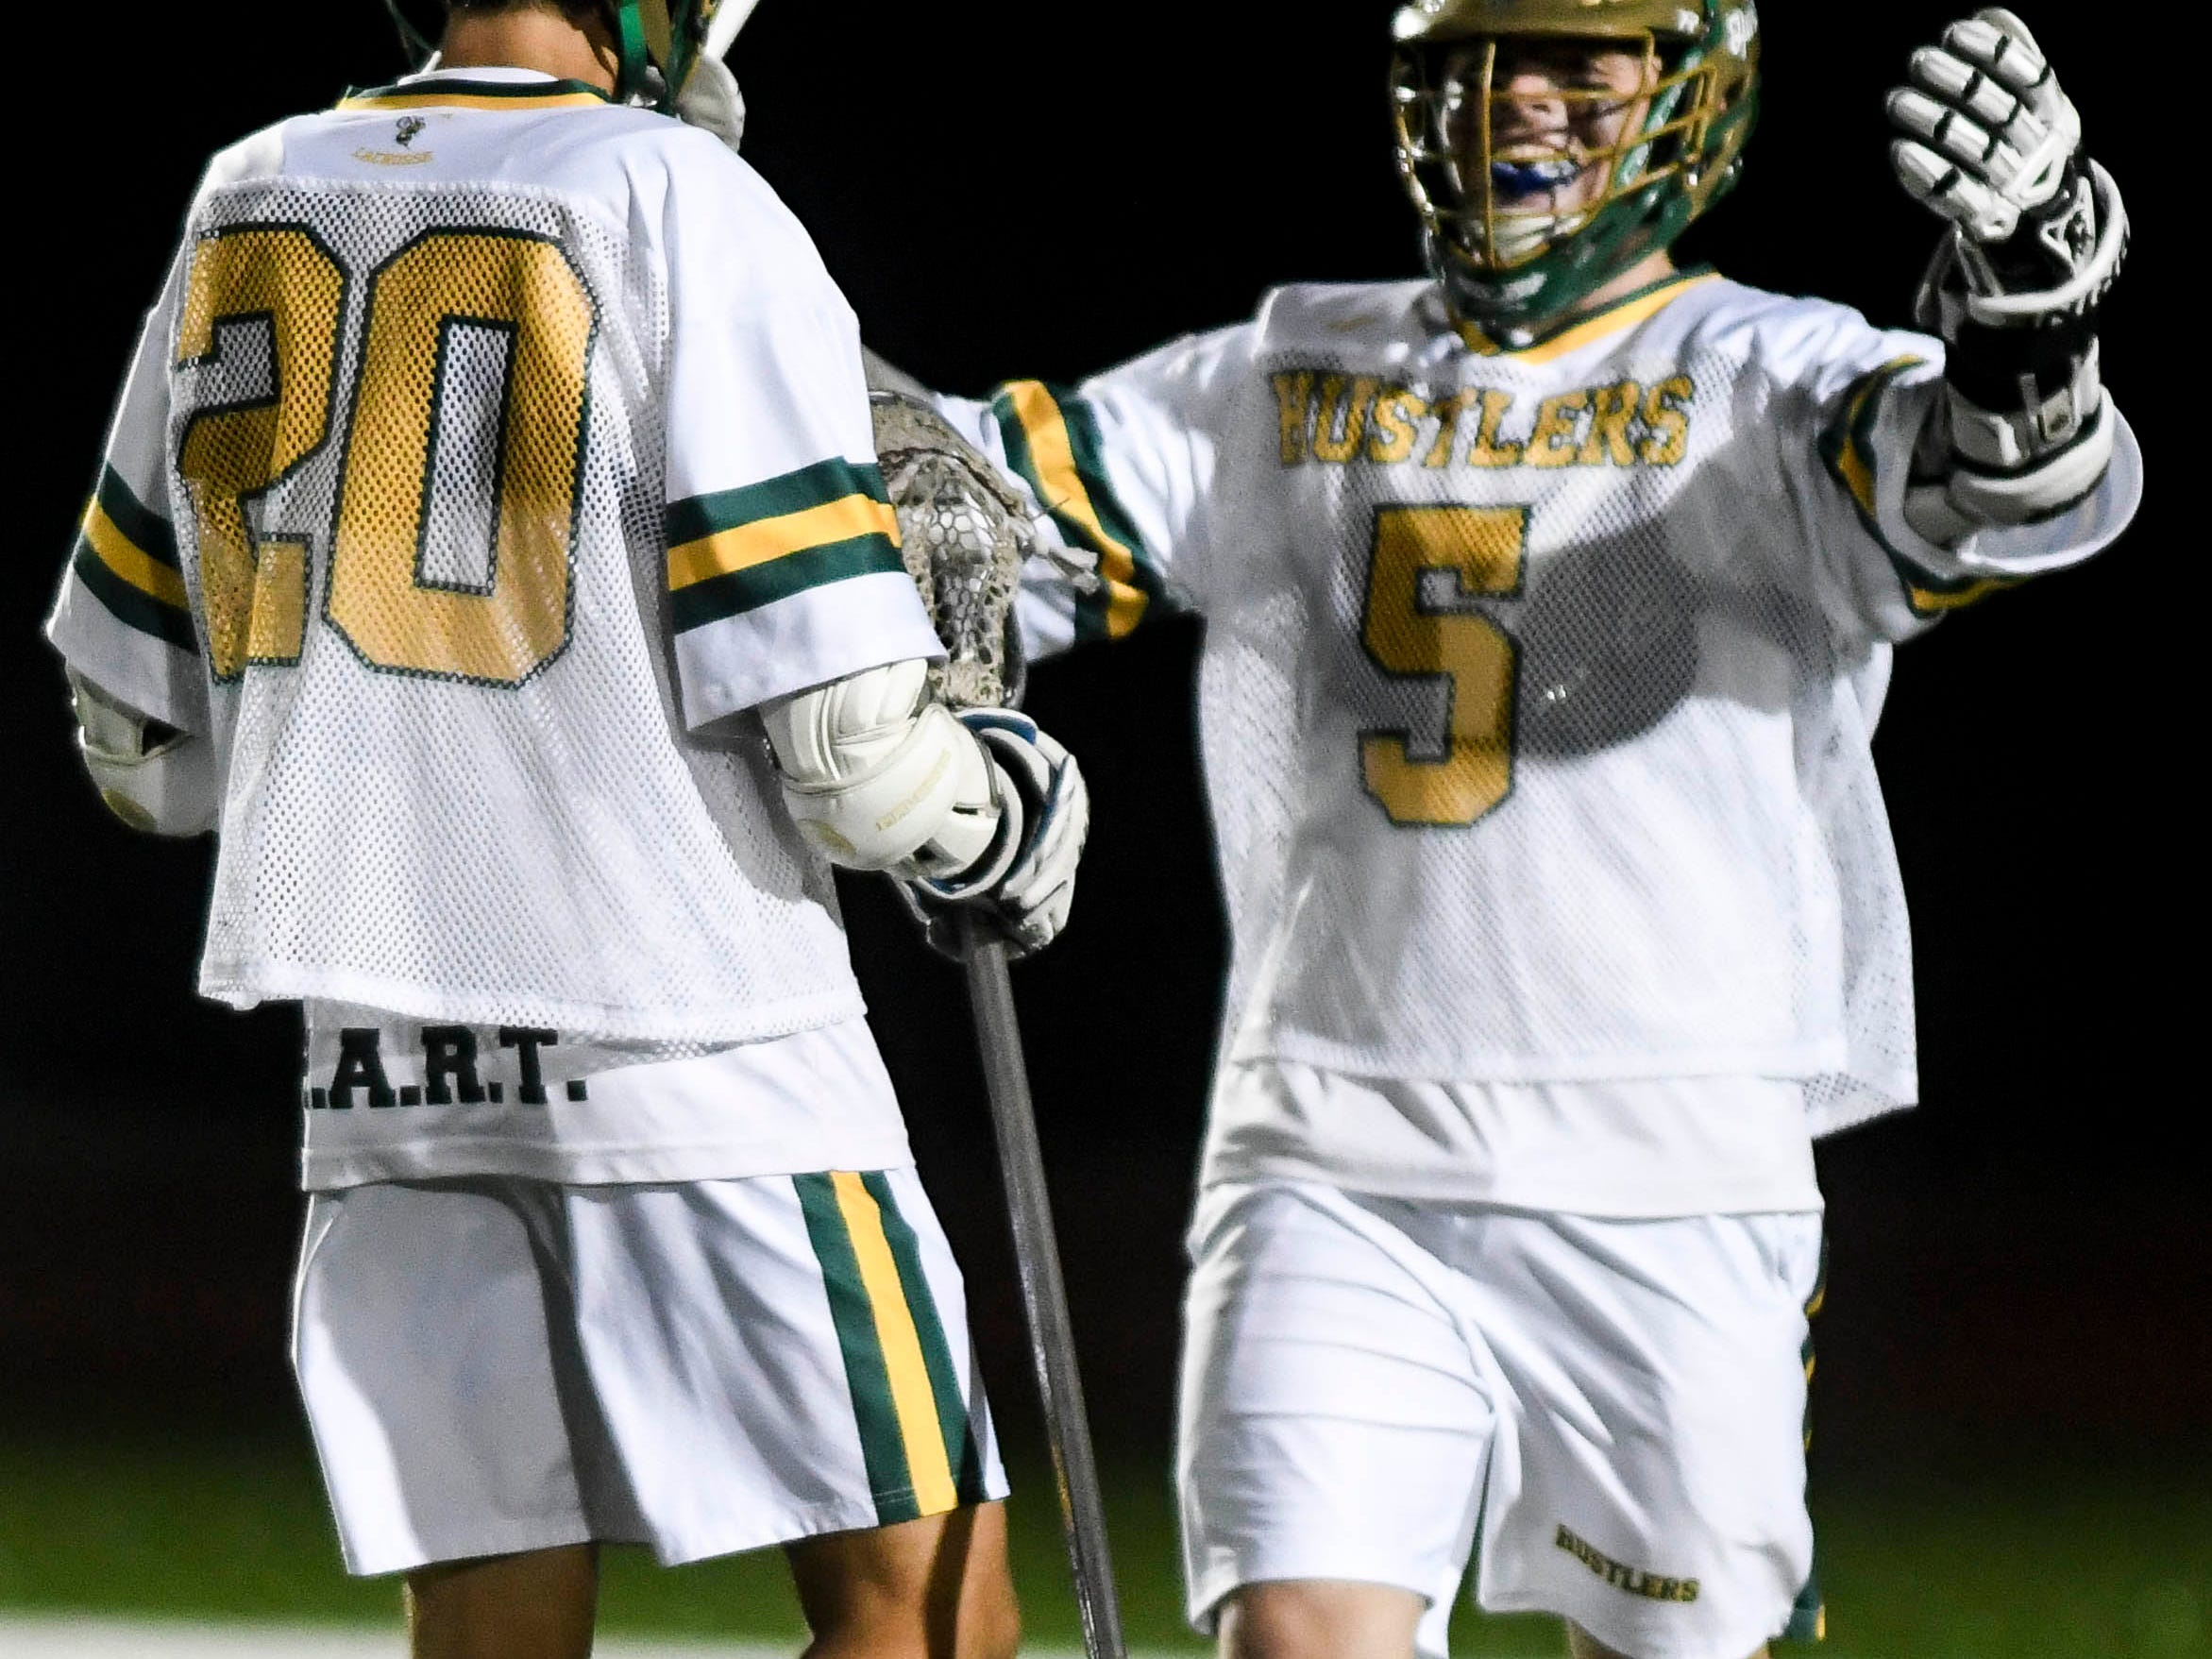 Sam Johnson of Melbourne Central Catholic (5) congratulates teammate Tanner Penn after he scored during Tuesday's game against Academy of the New Church.